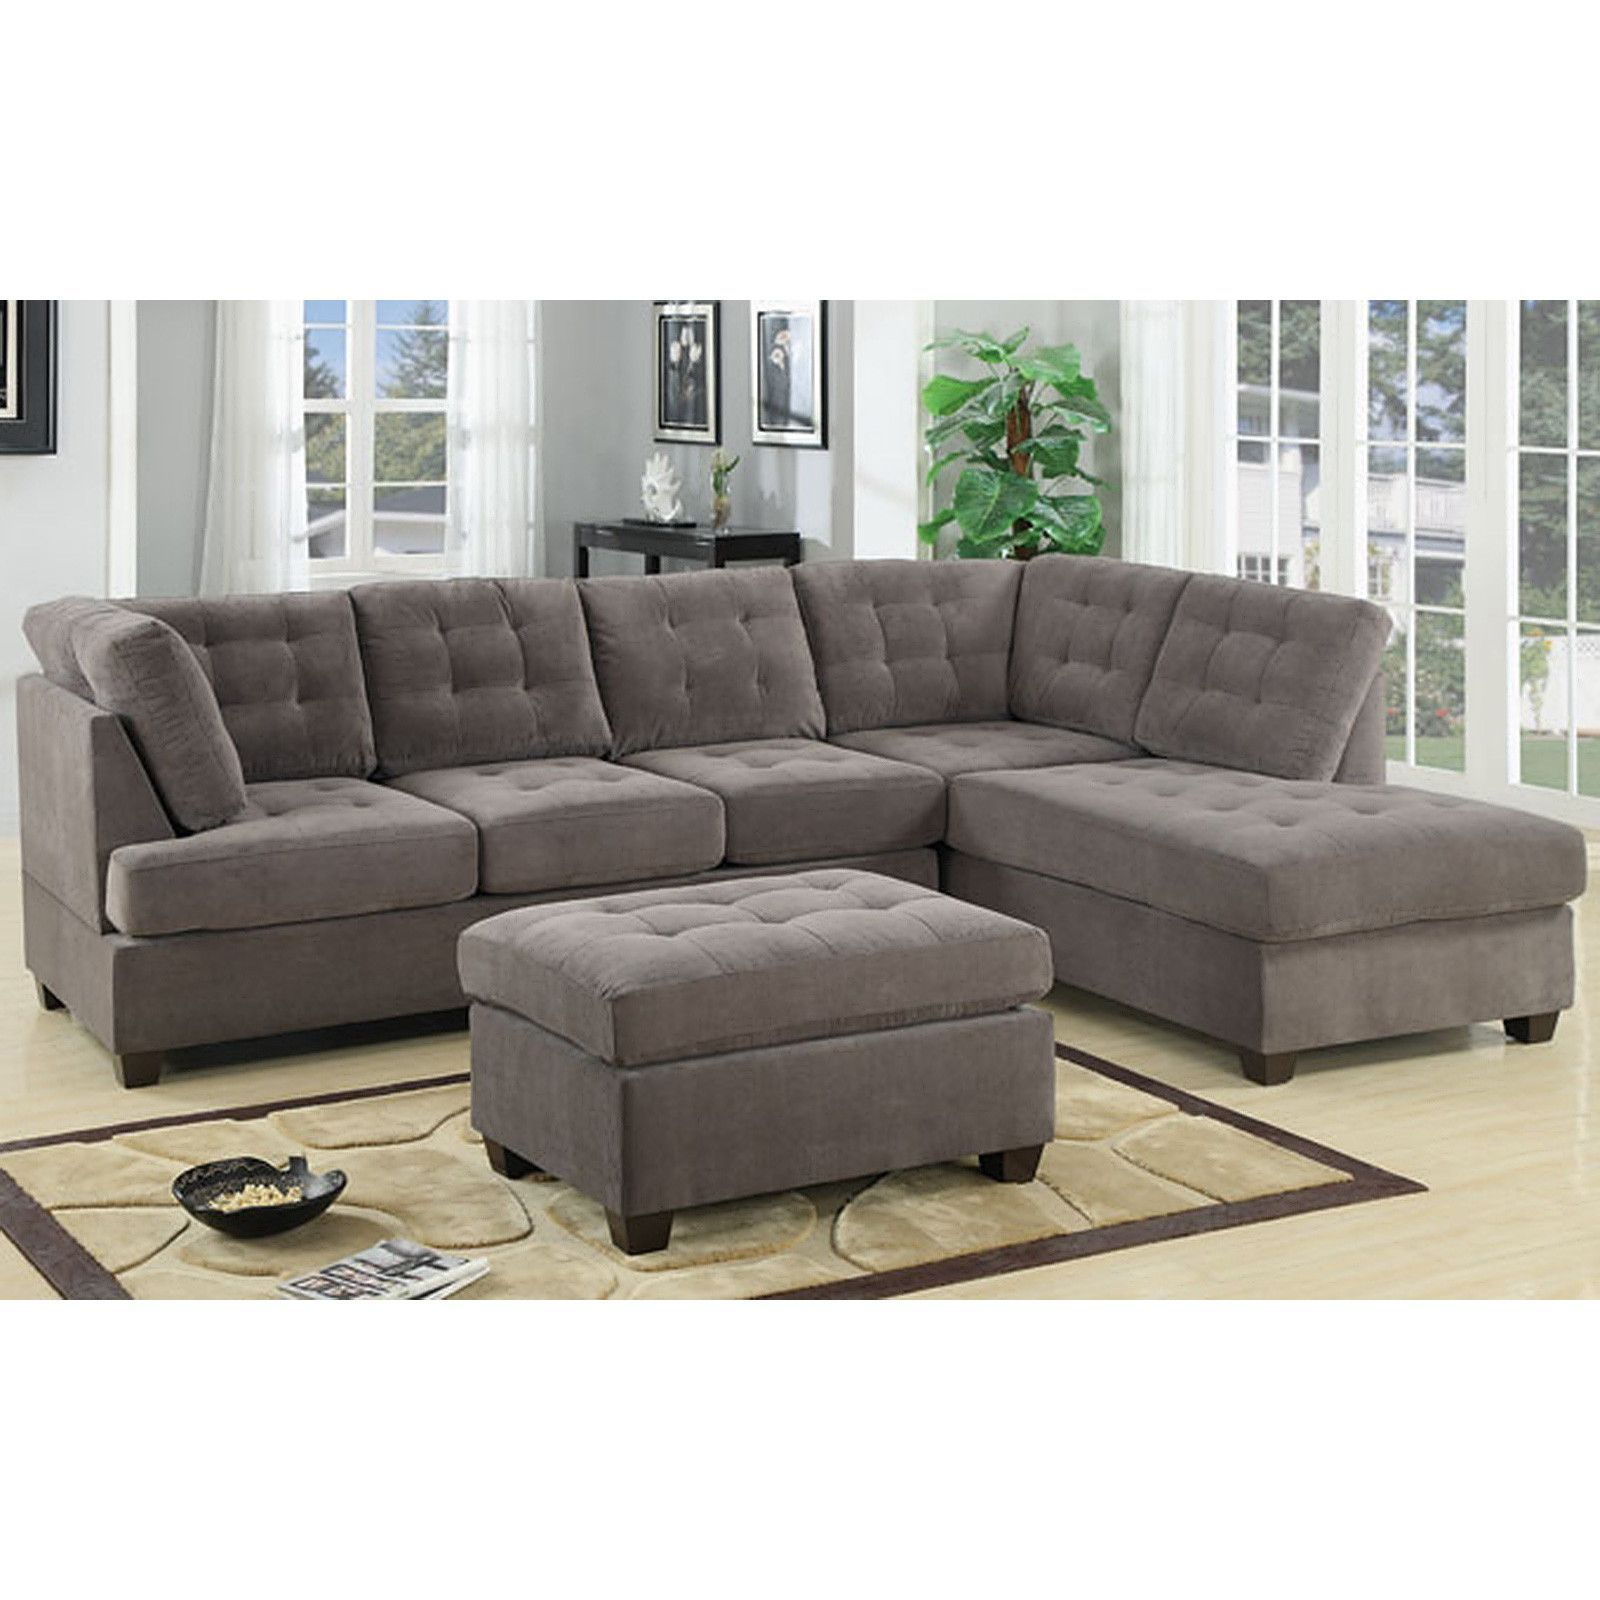 Our 3 piece sectional sofa with reversible chaise features a soft ...